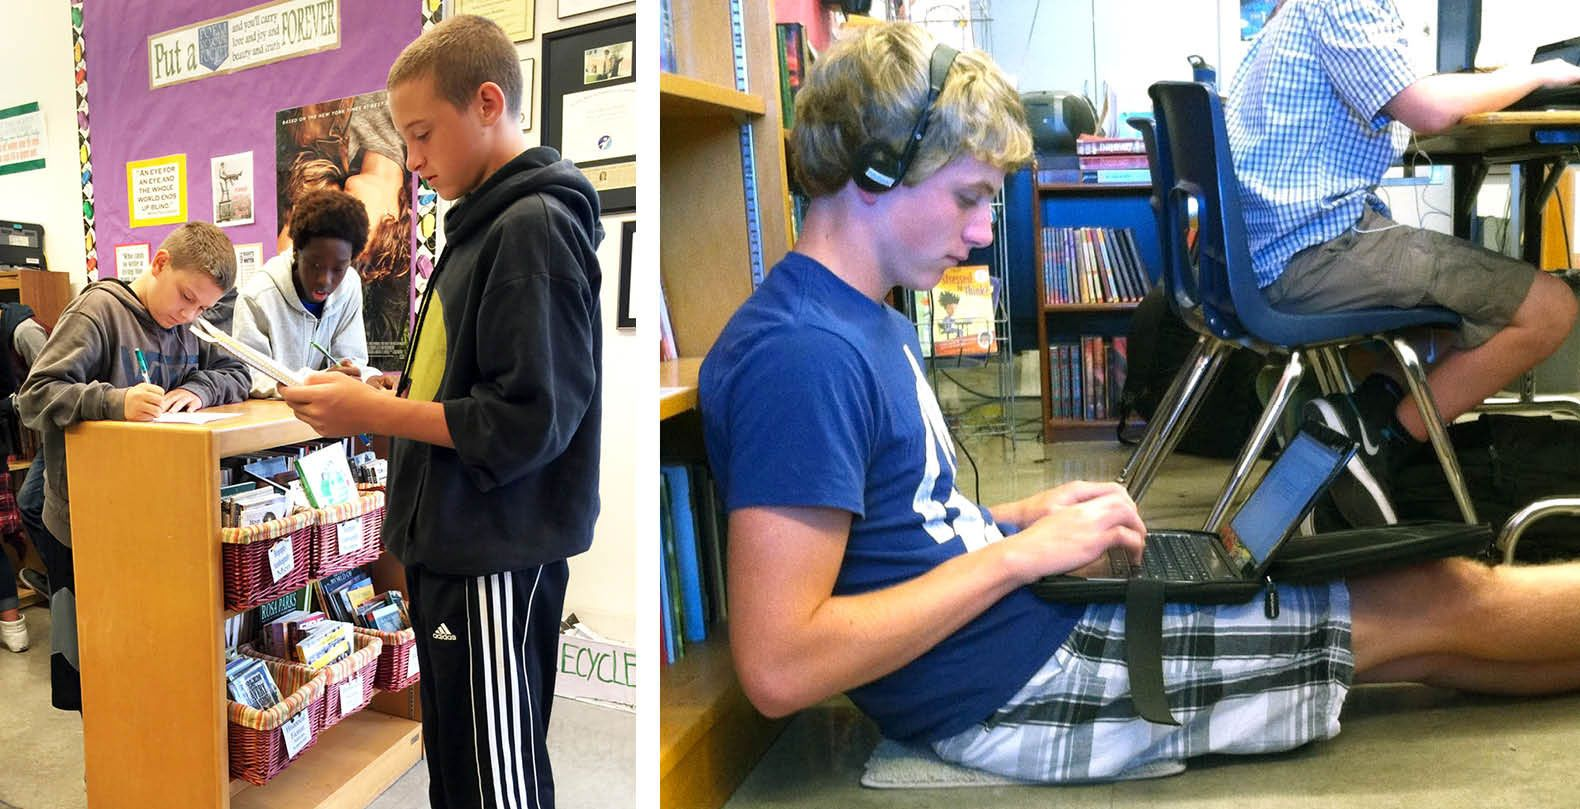 Students can use bookshelves as standing desks or as backrests.